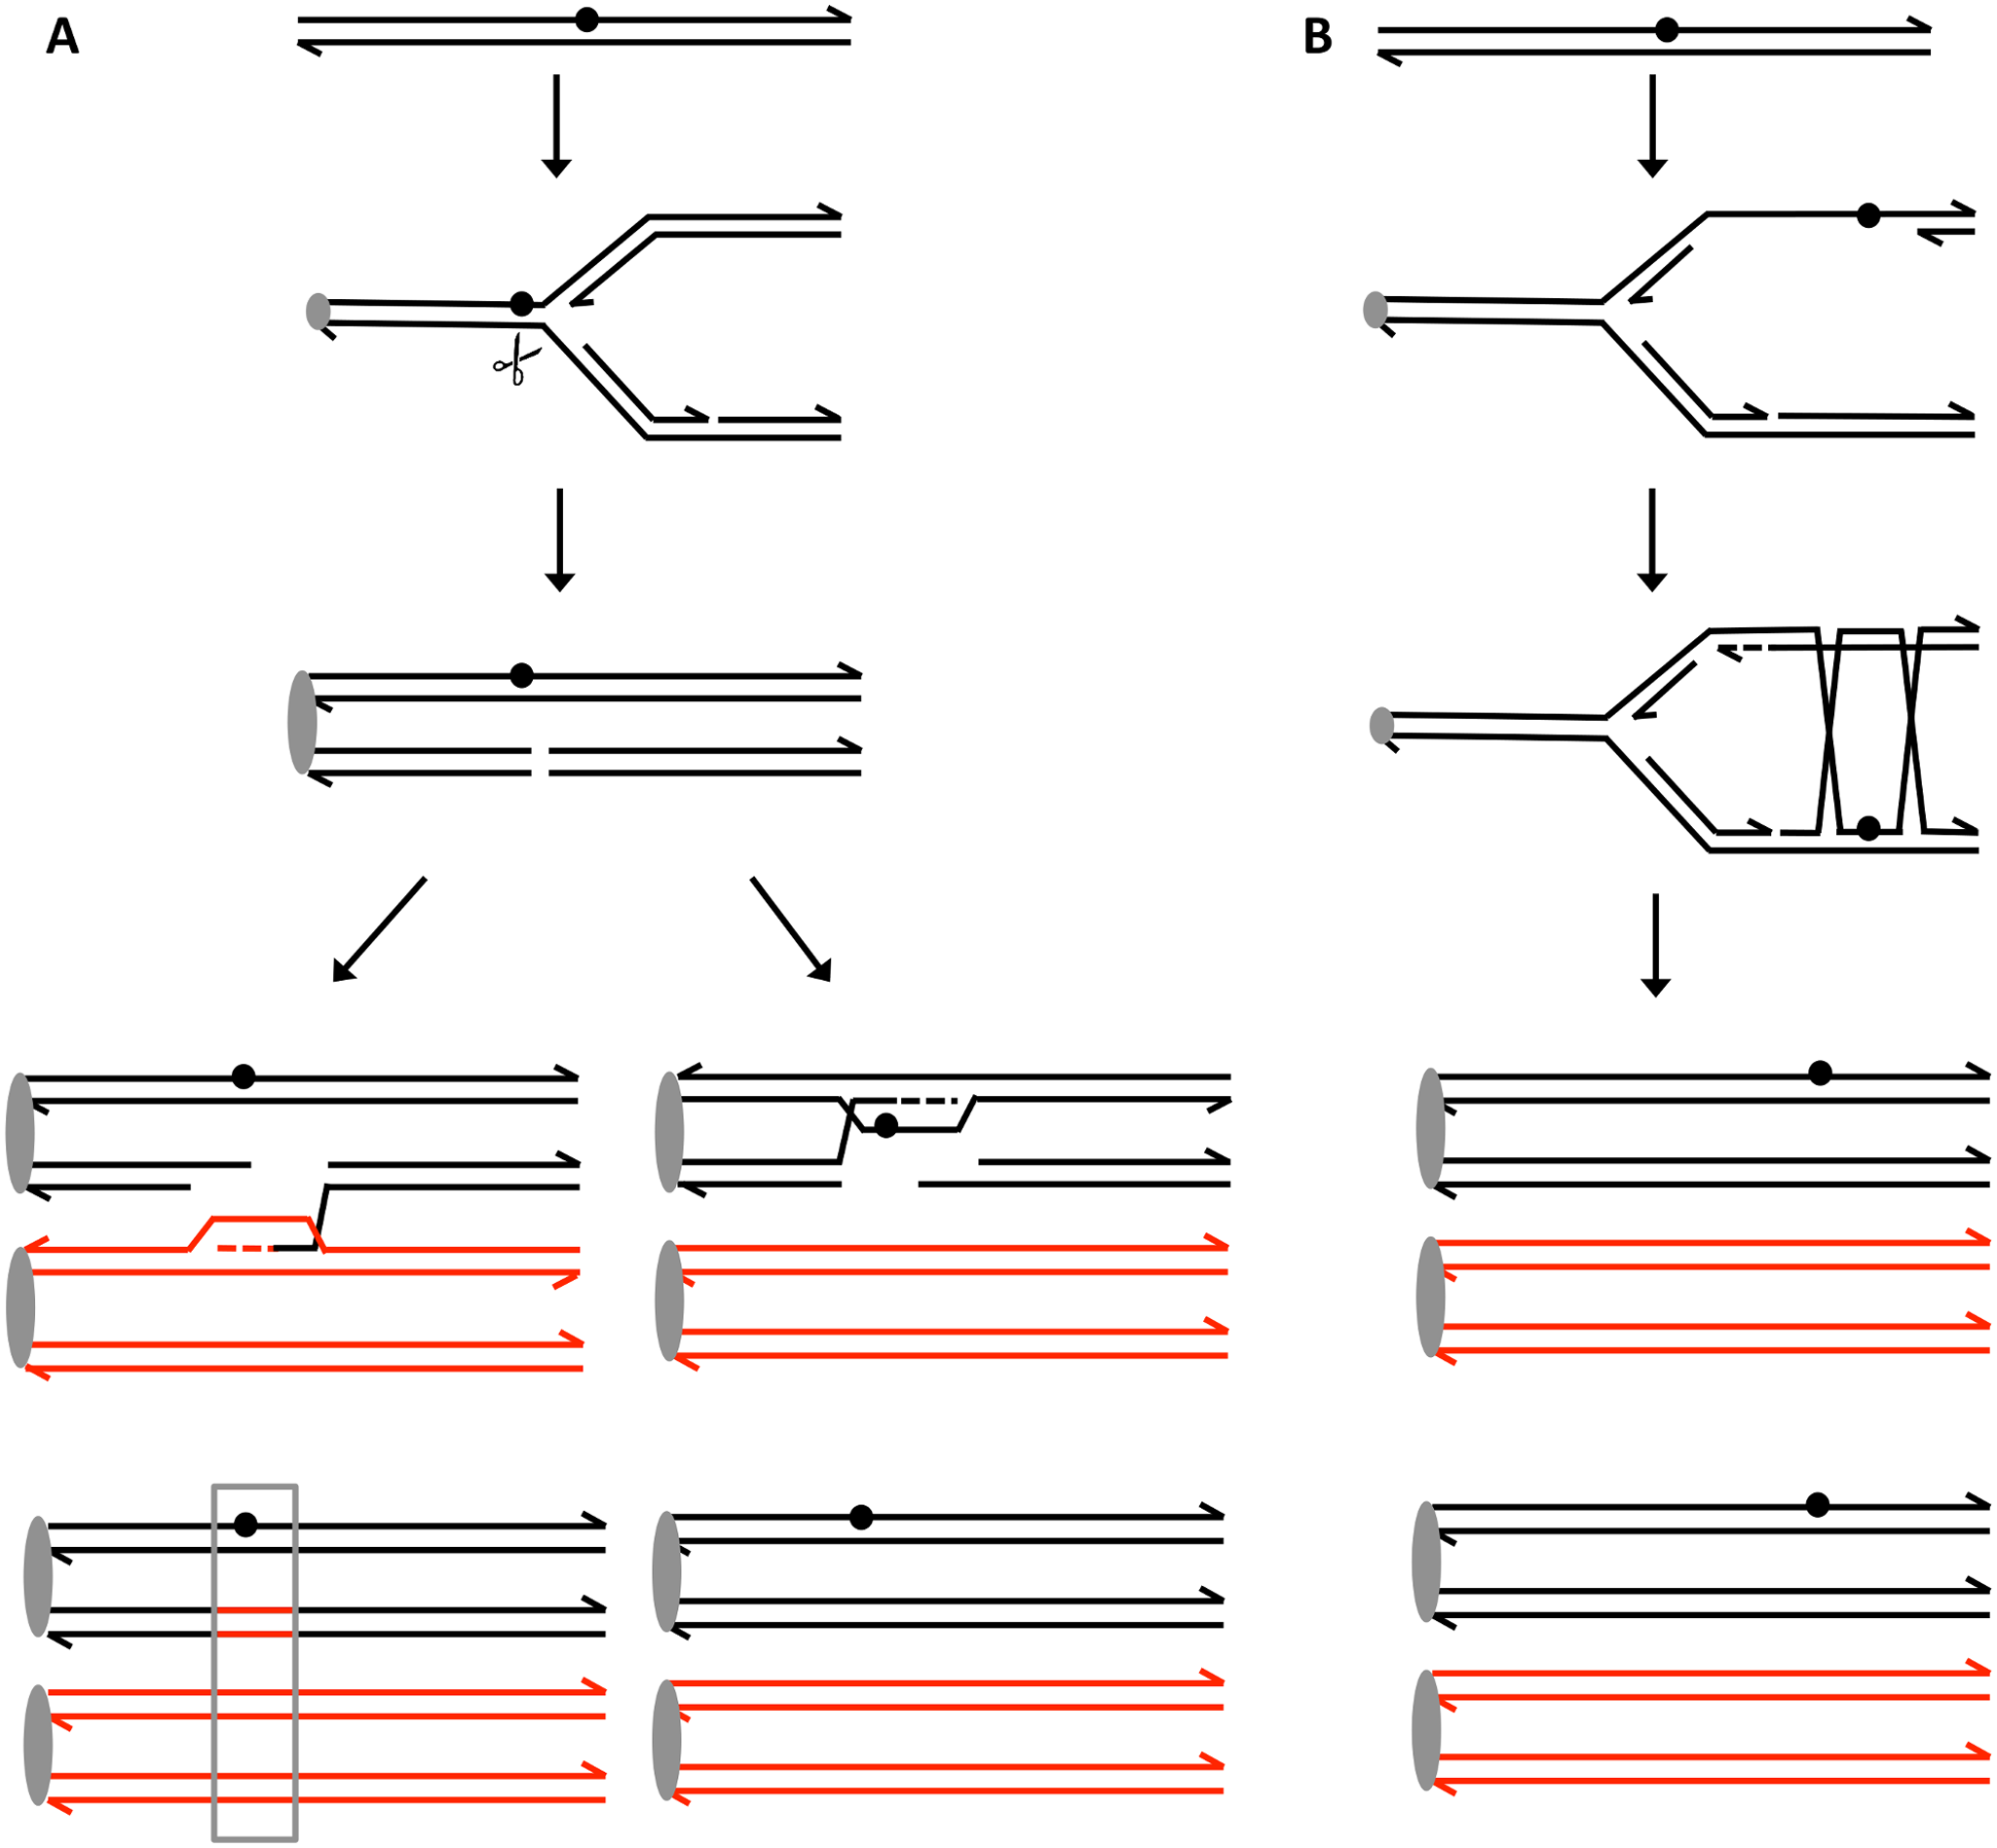 Recombination events induced by persistent UV damage in NER-deficient yeast strains.